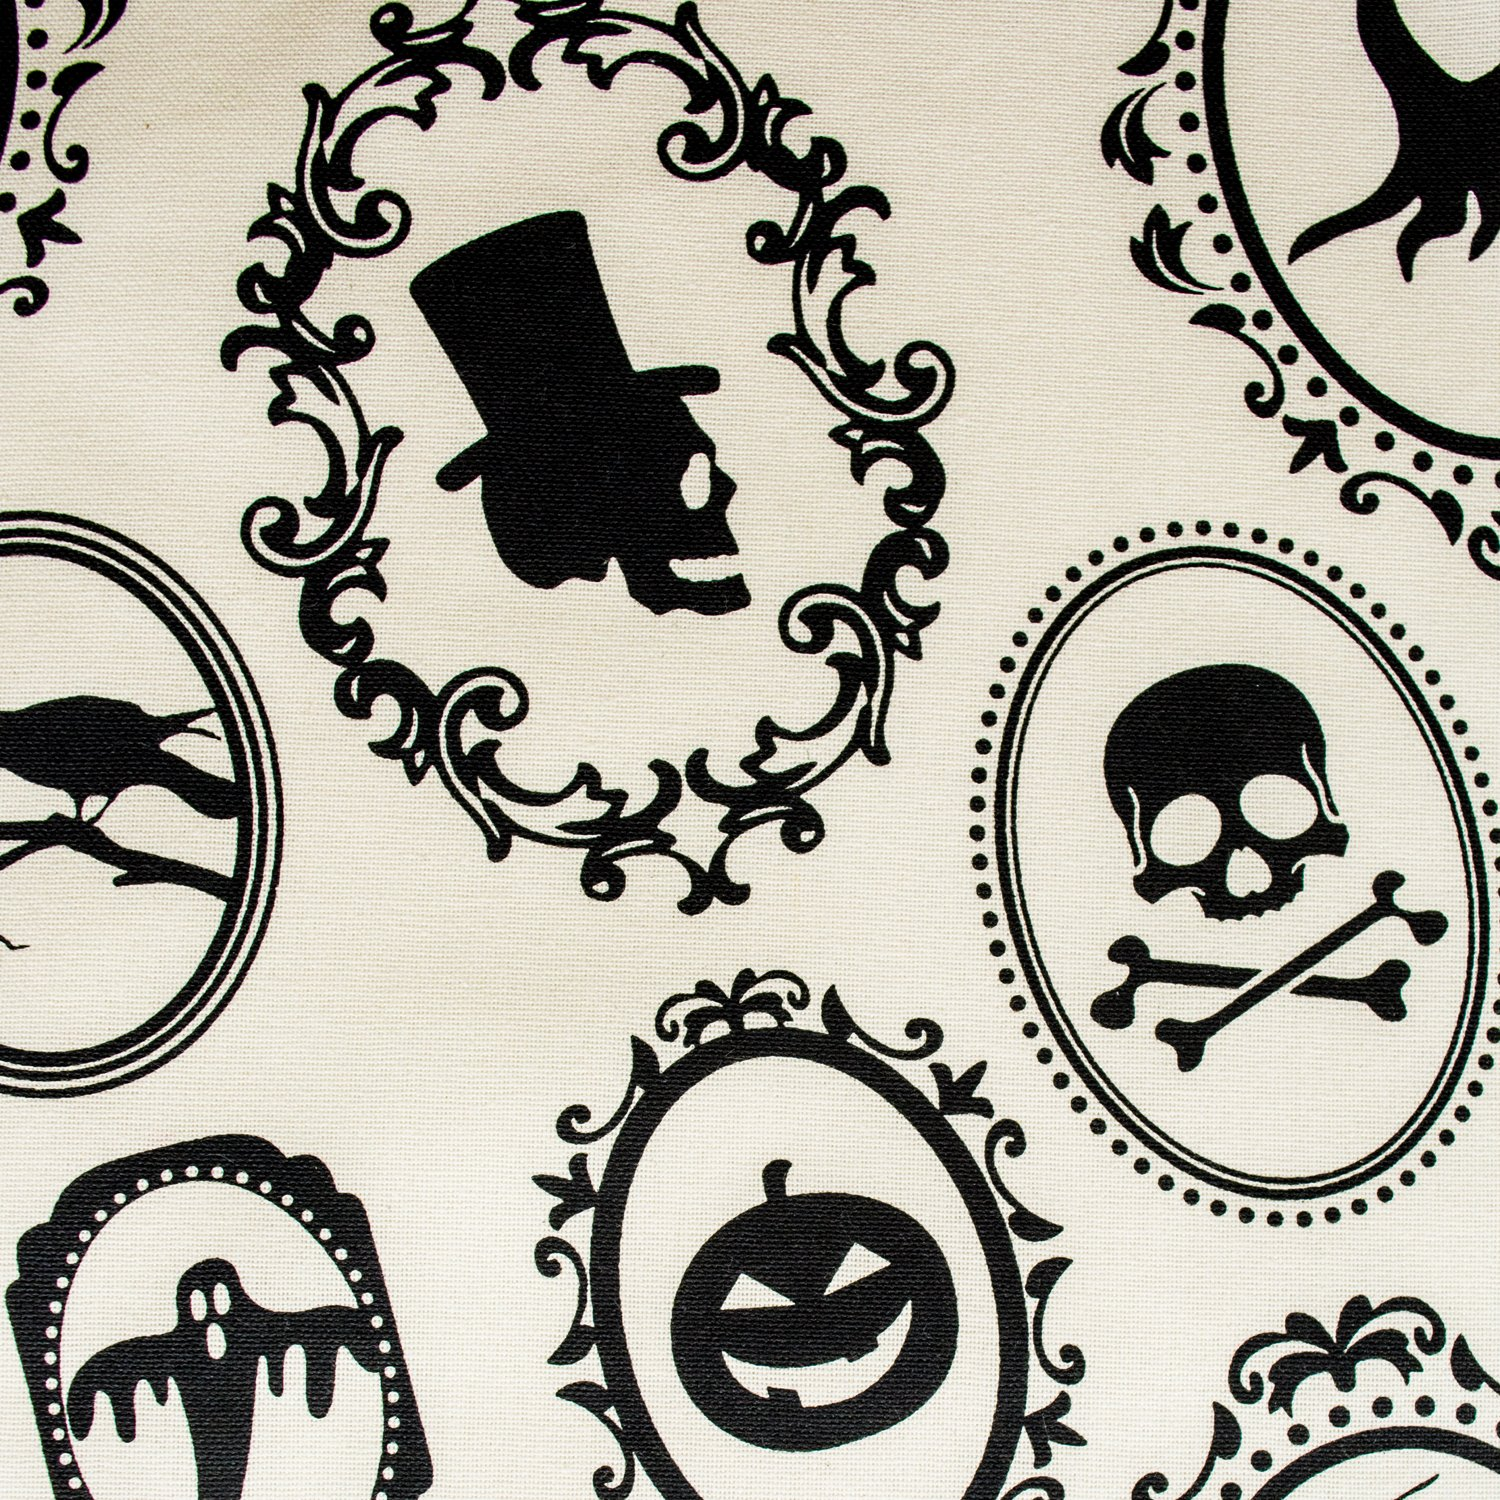 DII Oversized 20x20'' Cotton Napkin, Black & White Halloween Portrait - Perfect for Halloween, Dinner Parties and Scary Movie Nights by DII (Image #2)